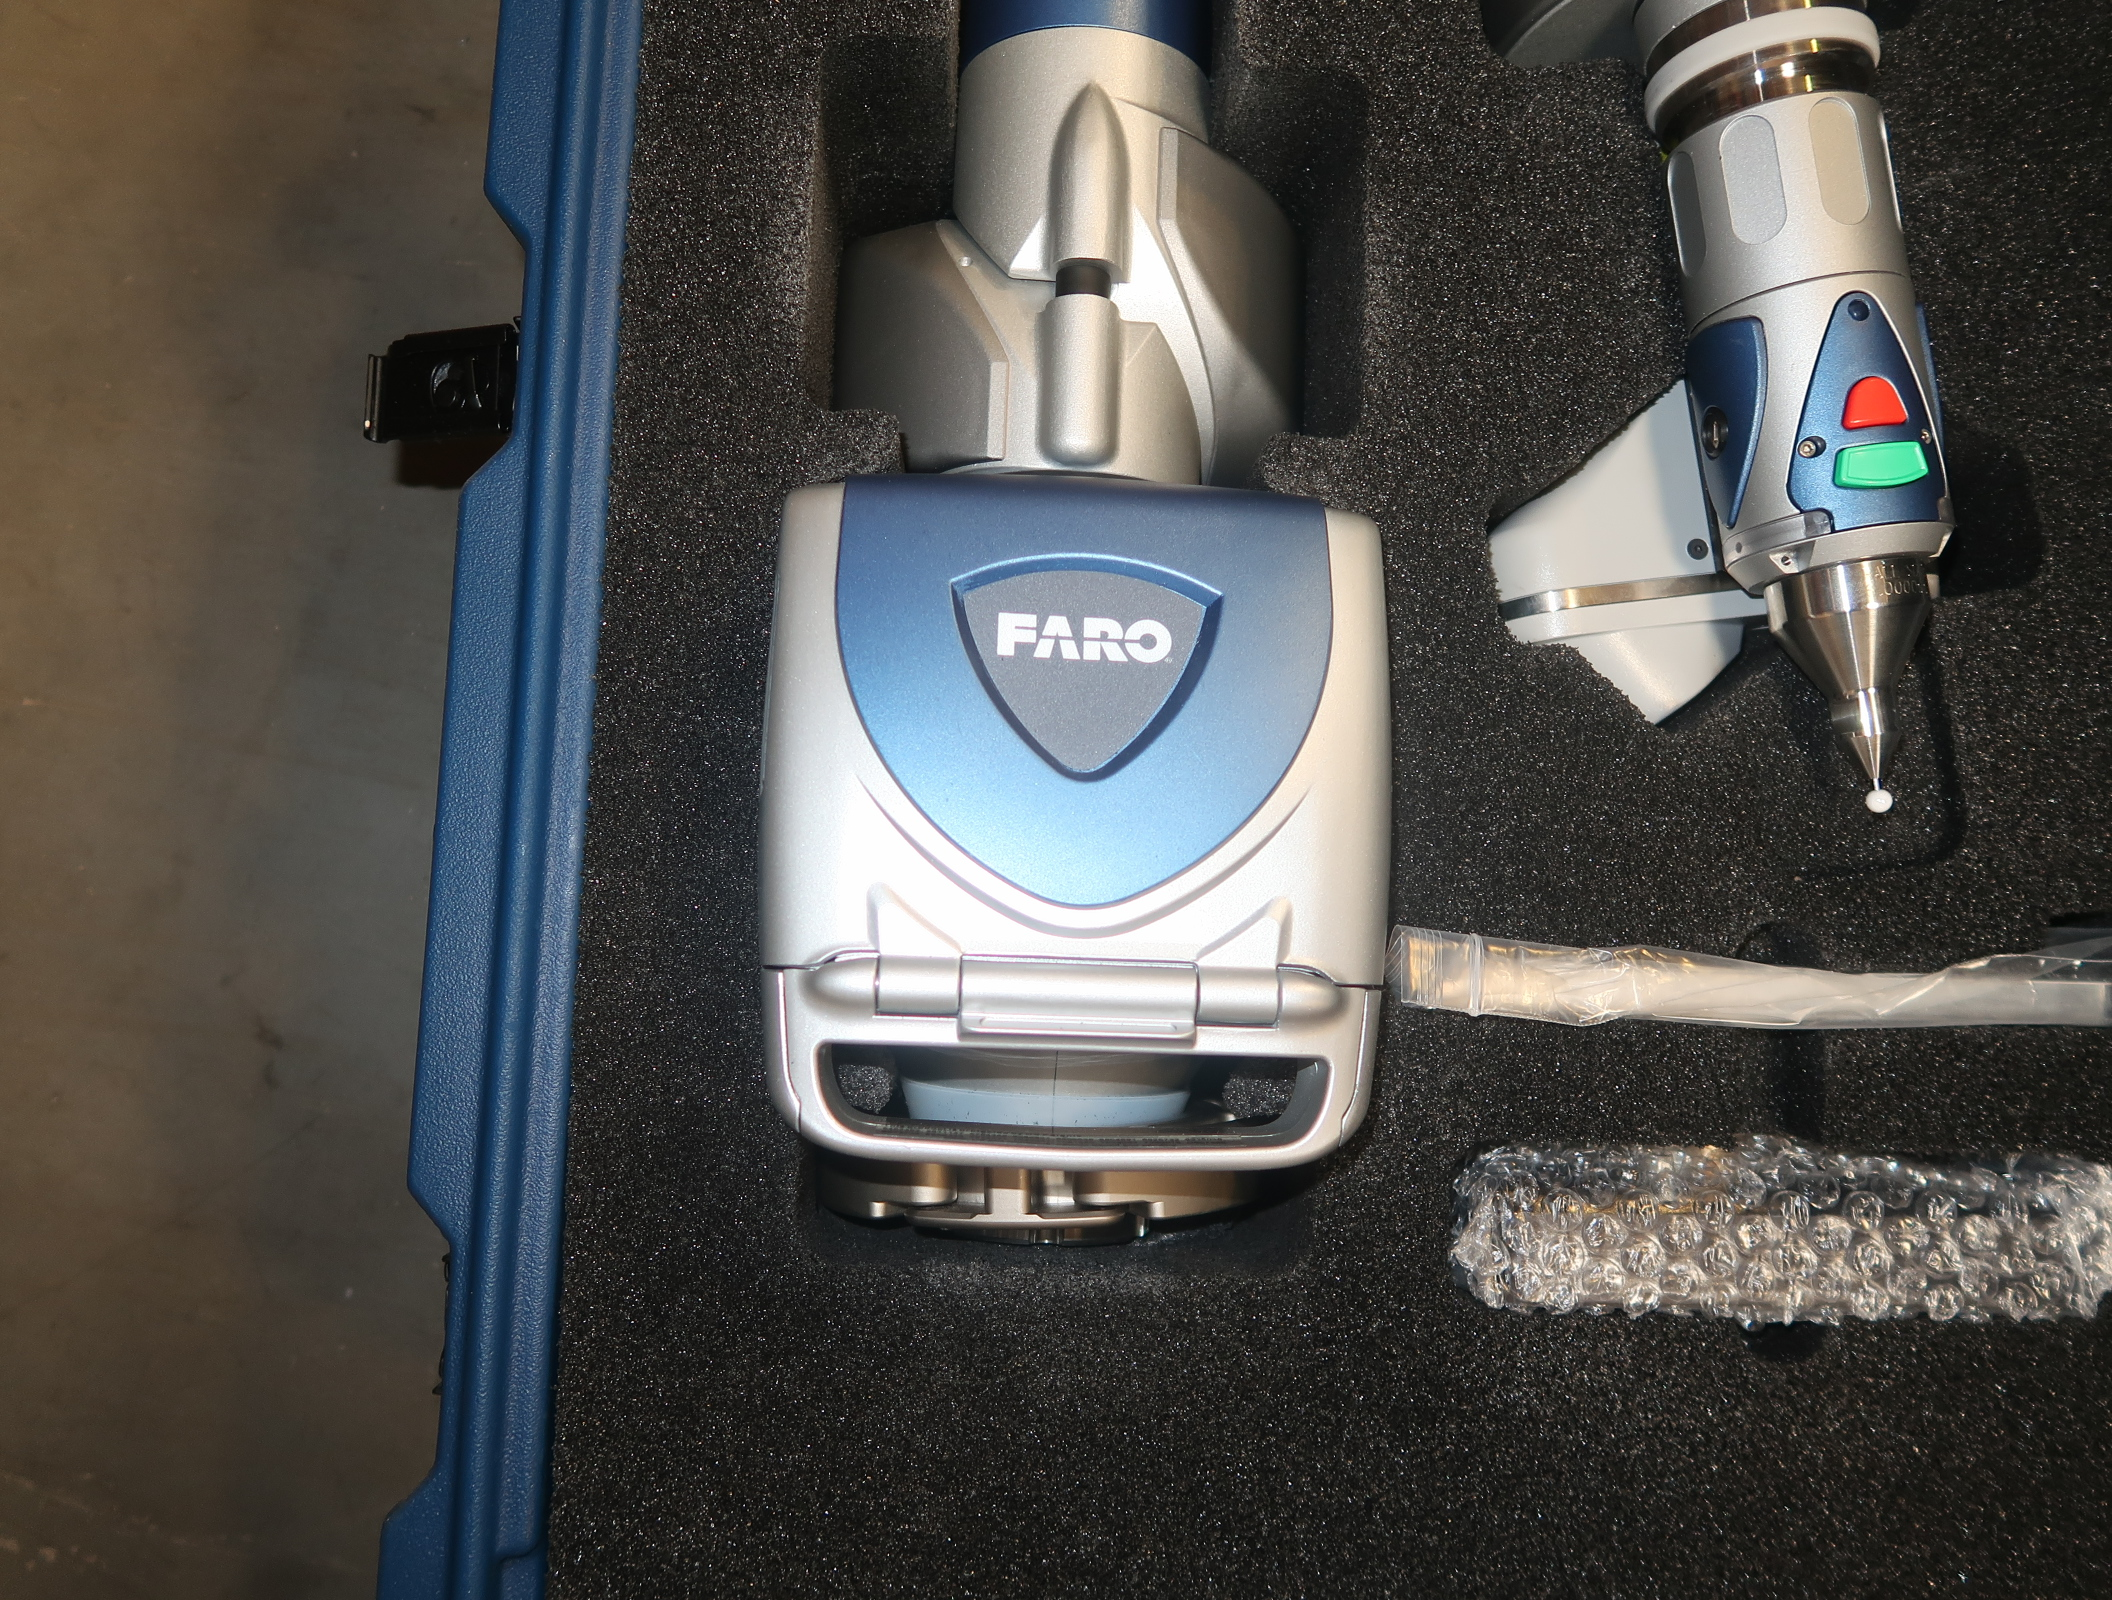 2016 FARO ARM, 3D MEASURING SYSTEM, SN. E09-D5-16-14202 REVISION 1, W/KEY FOB-DONGLE, GEO MAGIC, SO - Image 5 of 20